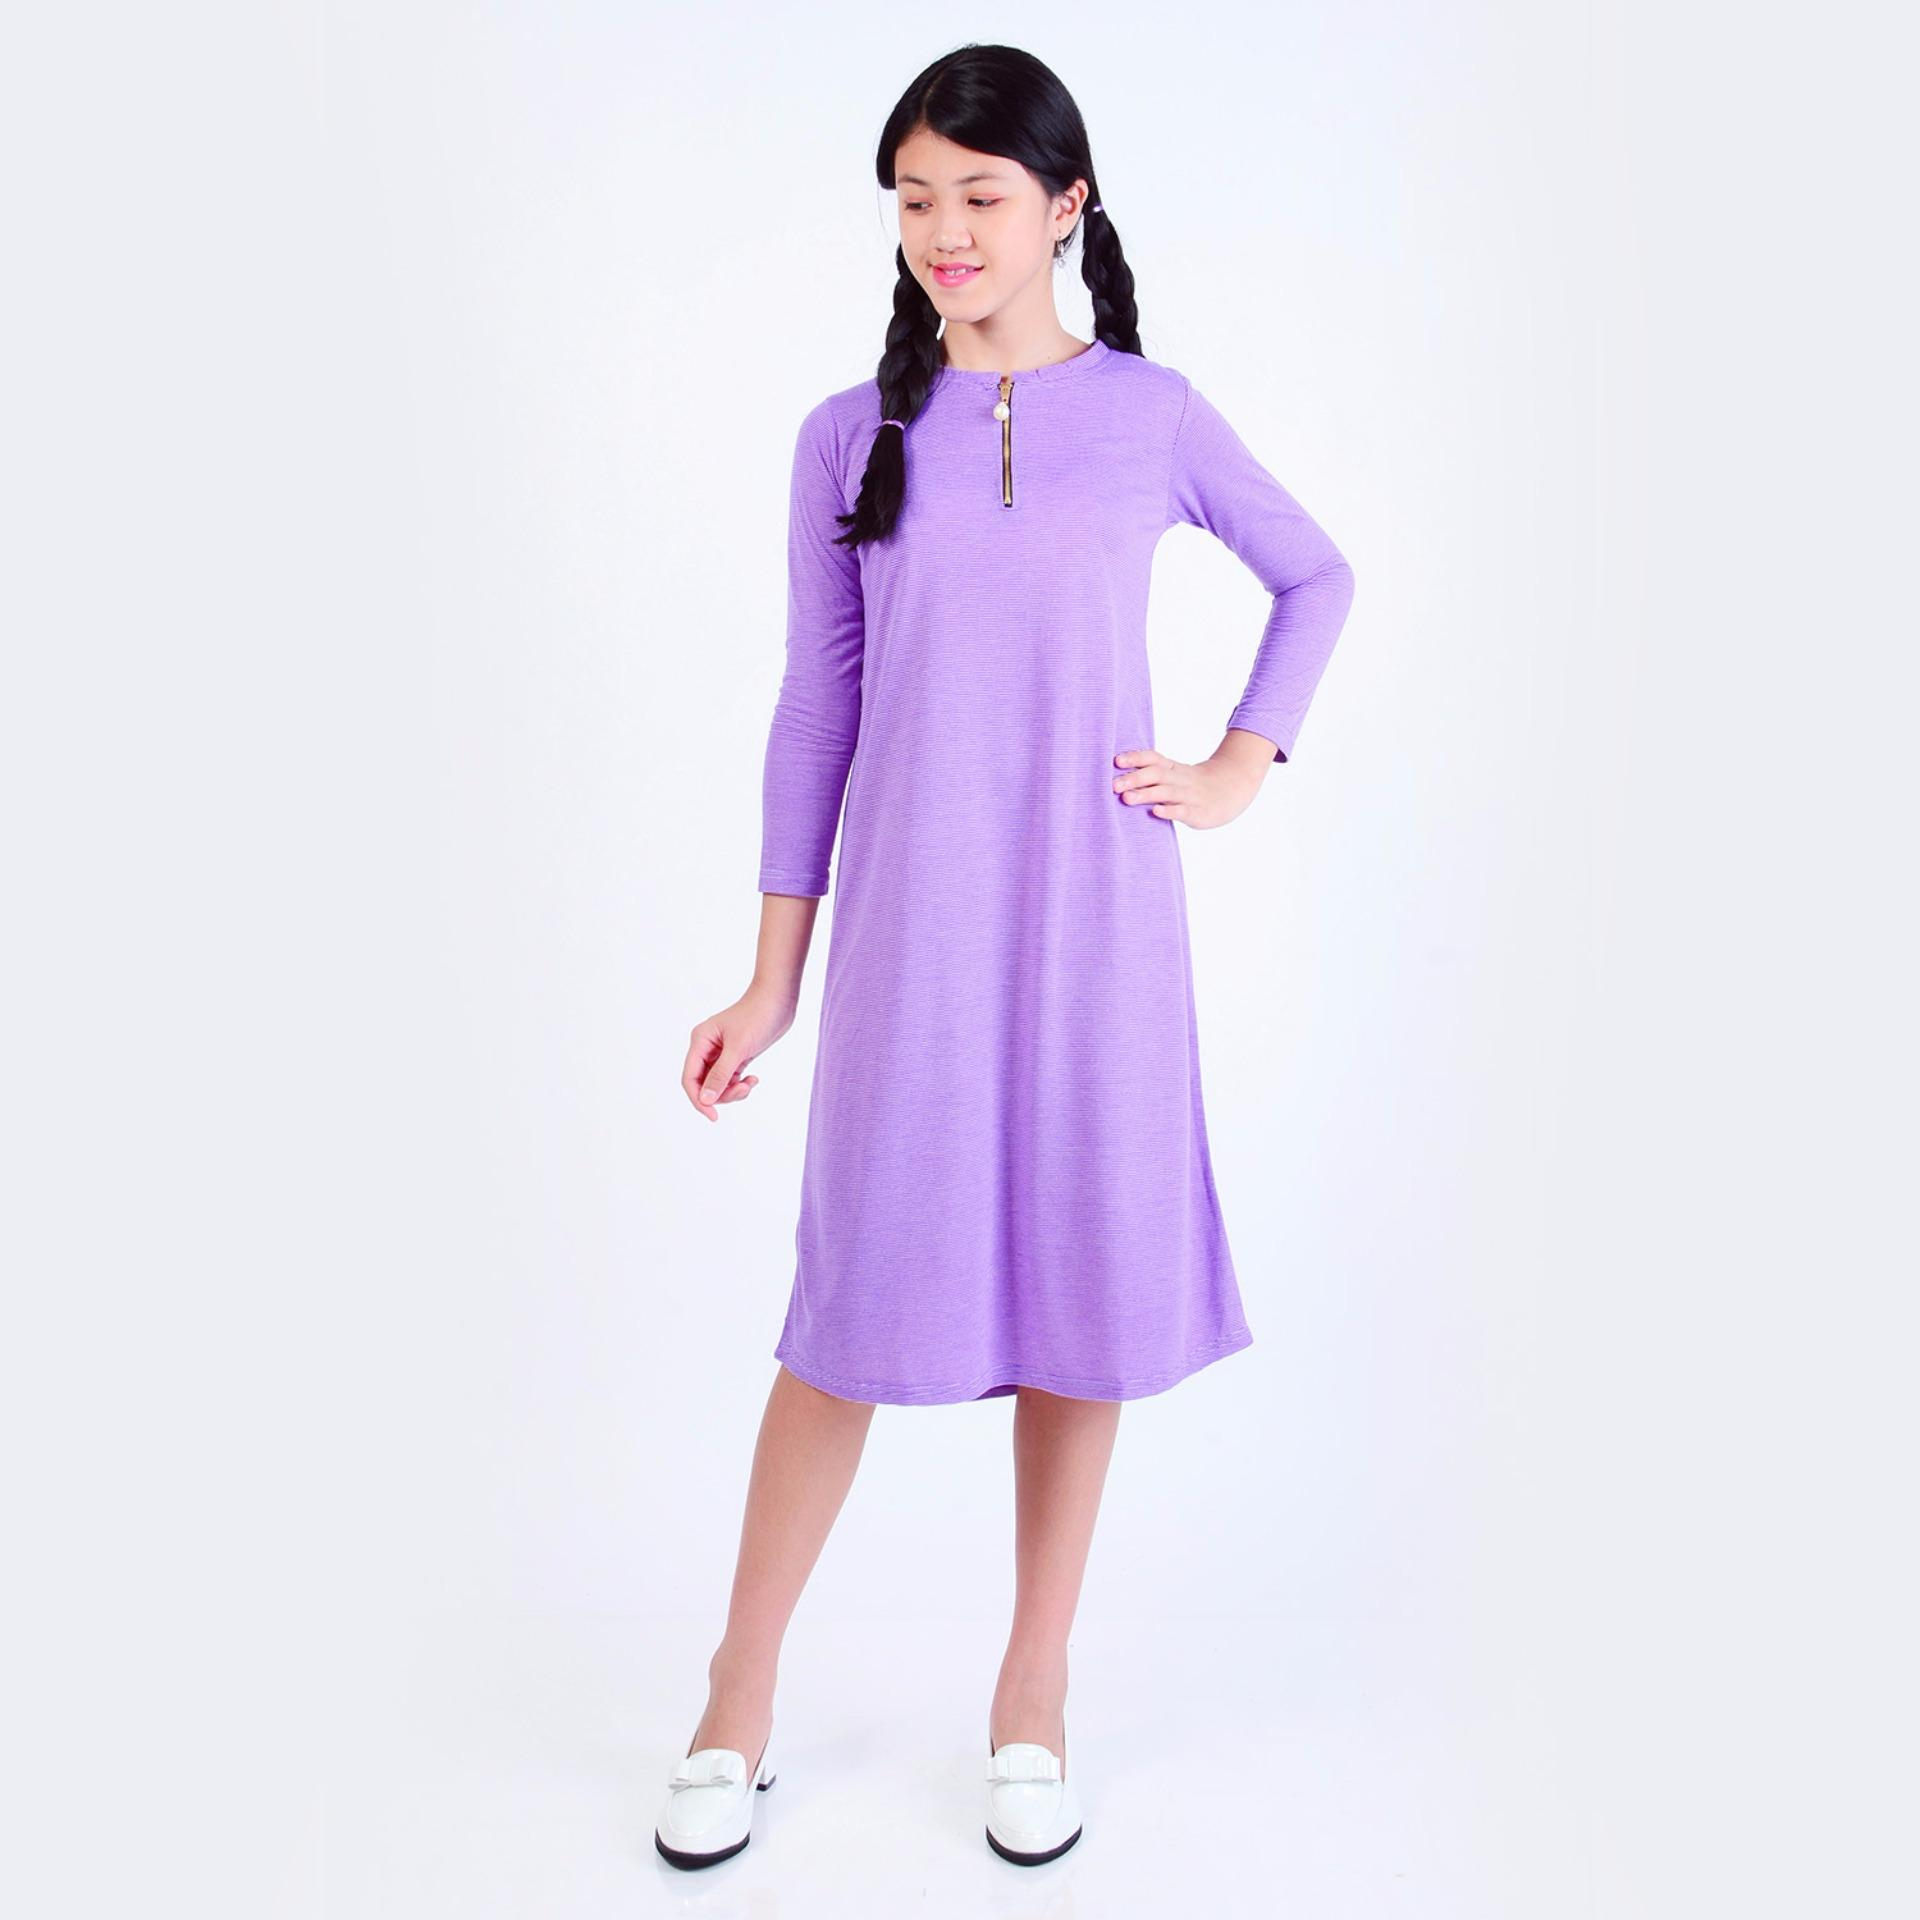 Jfashion Dress Anak variasi seleting tangan Panjang - Aurelteen Ungu